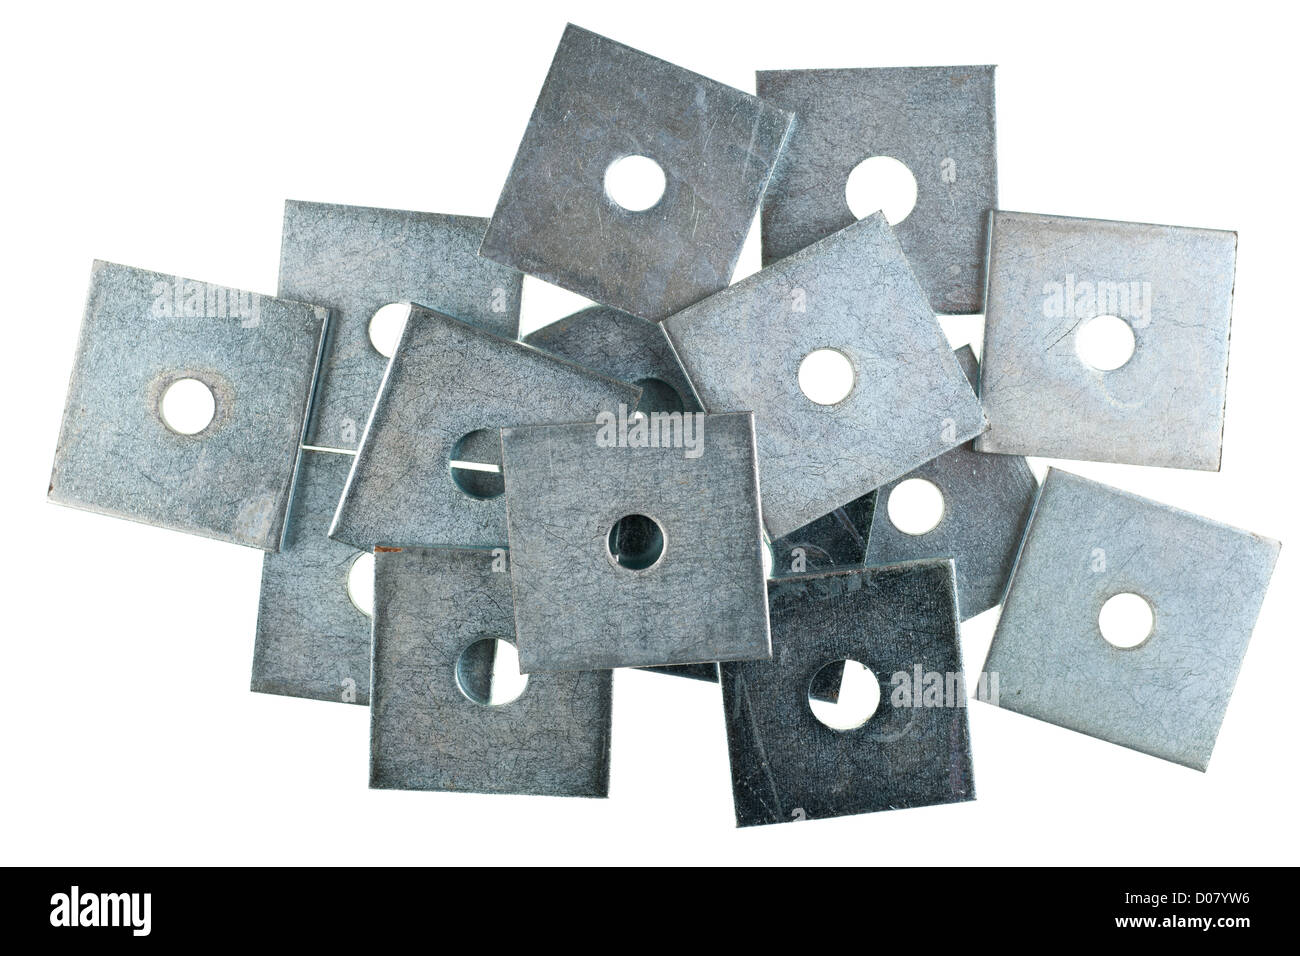 Pile of square M10 and M12 50mm by 50mm zinc plated plate washers - Stock Image